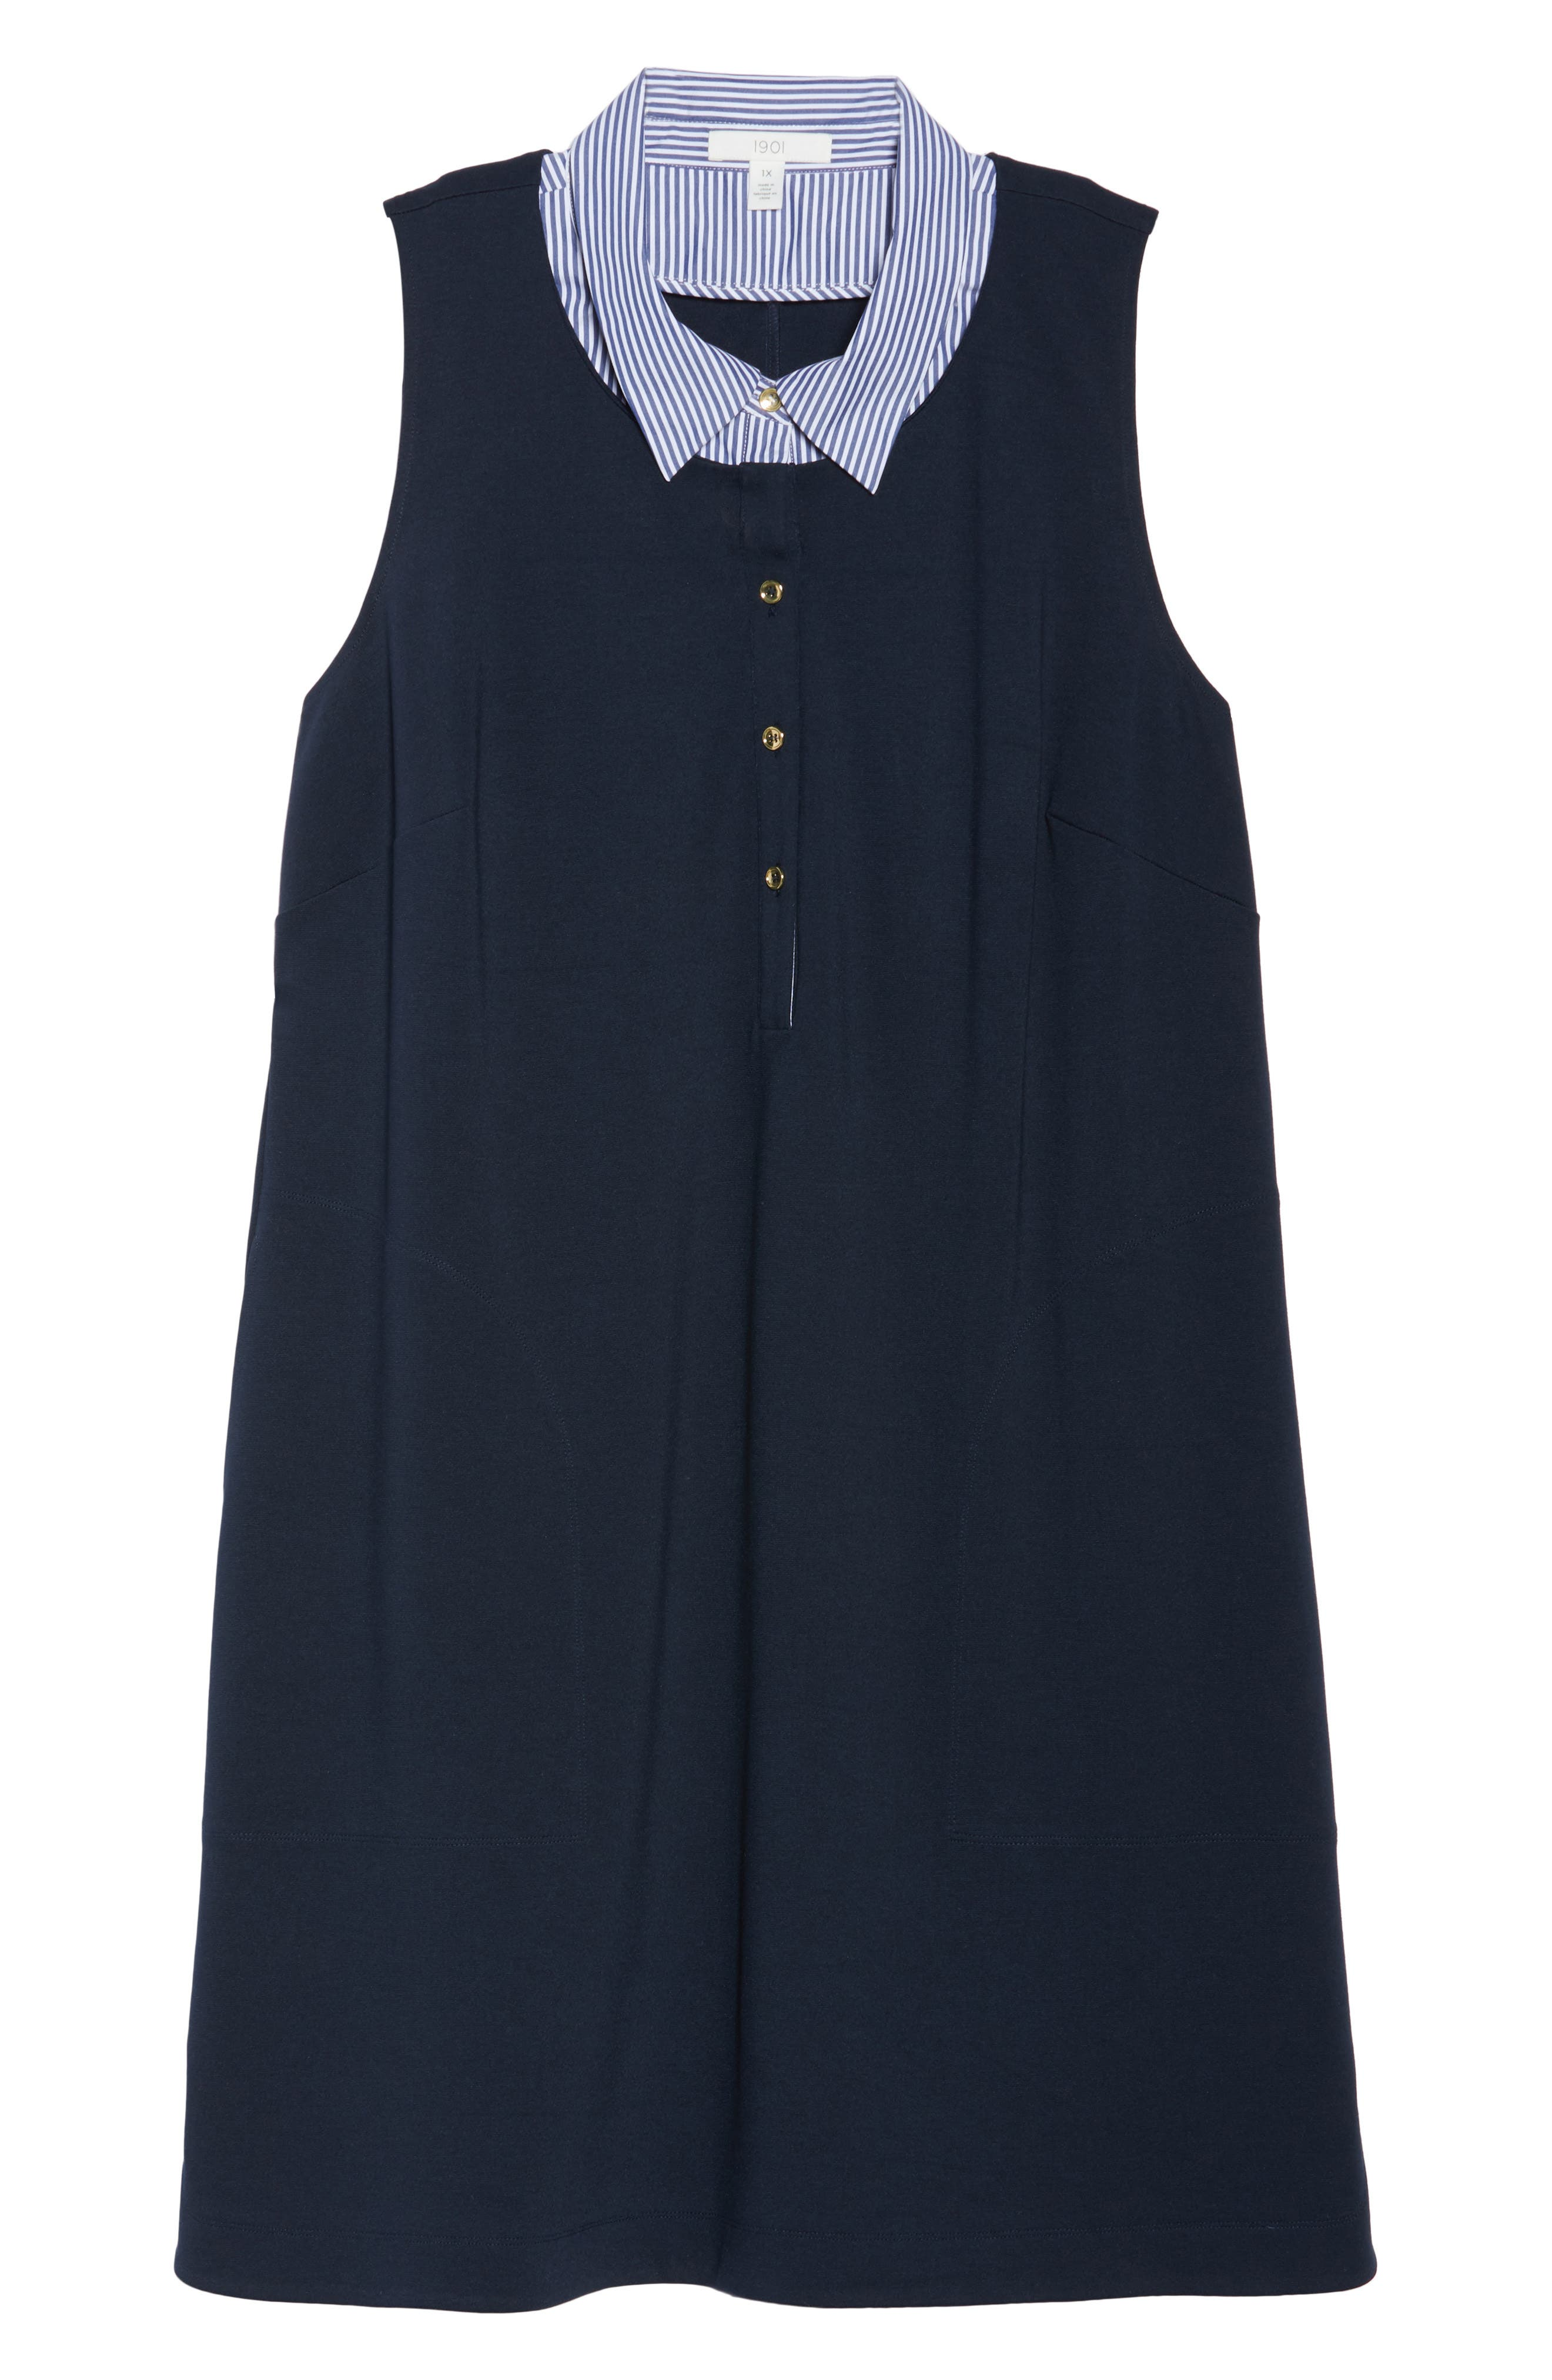 Poplin Collar Knit Dress,                             Alternate thumbnail 6, color,                             Navy